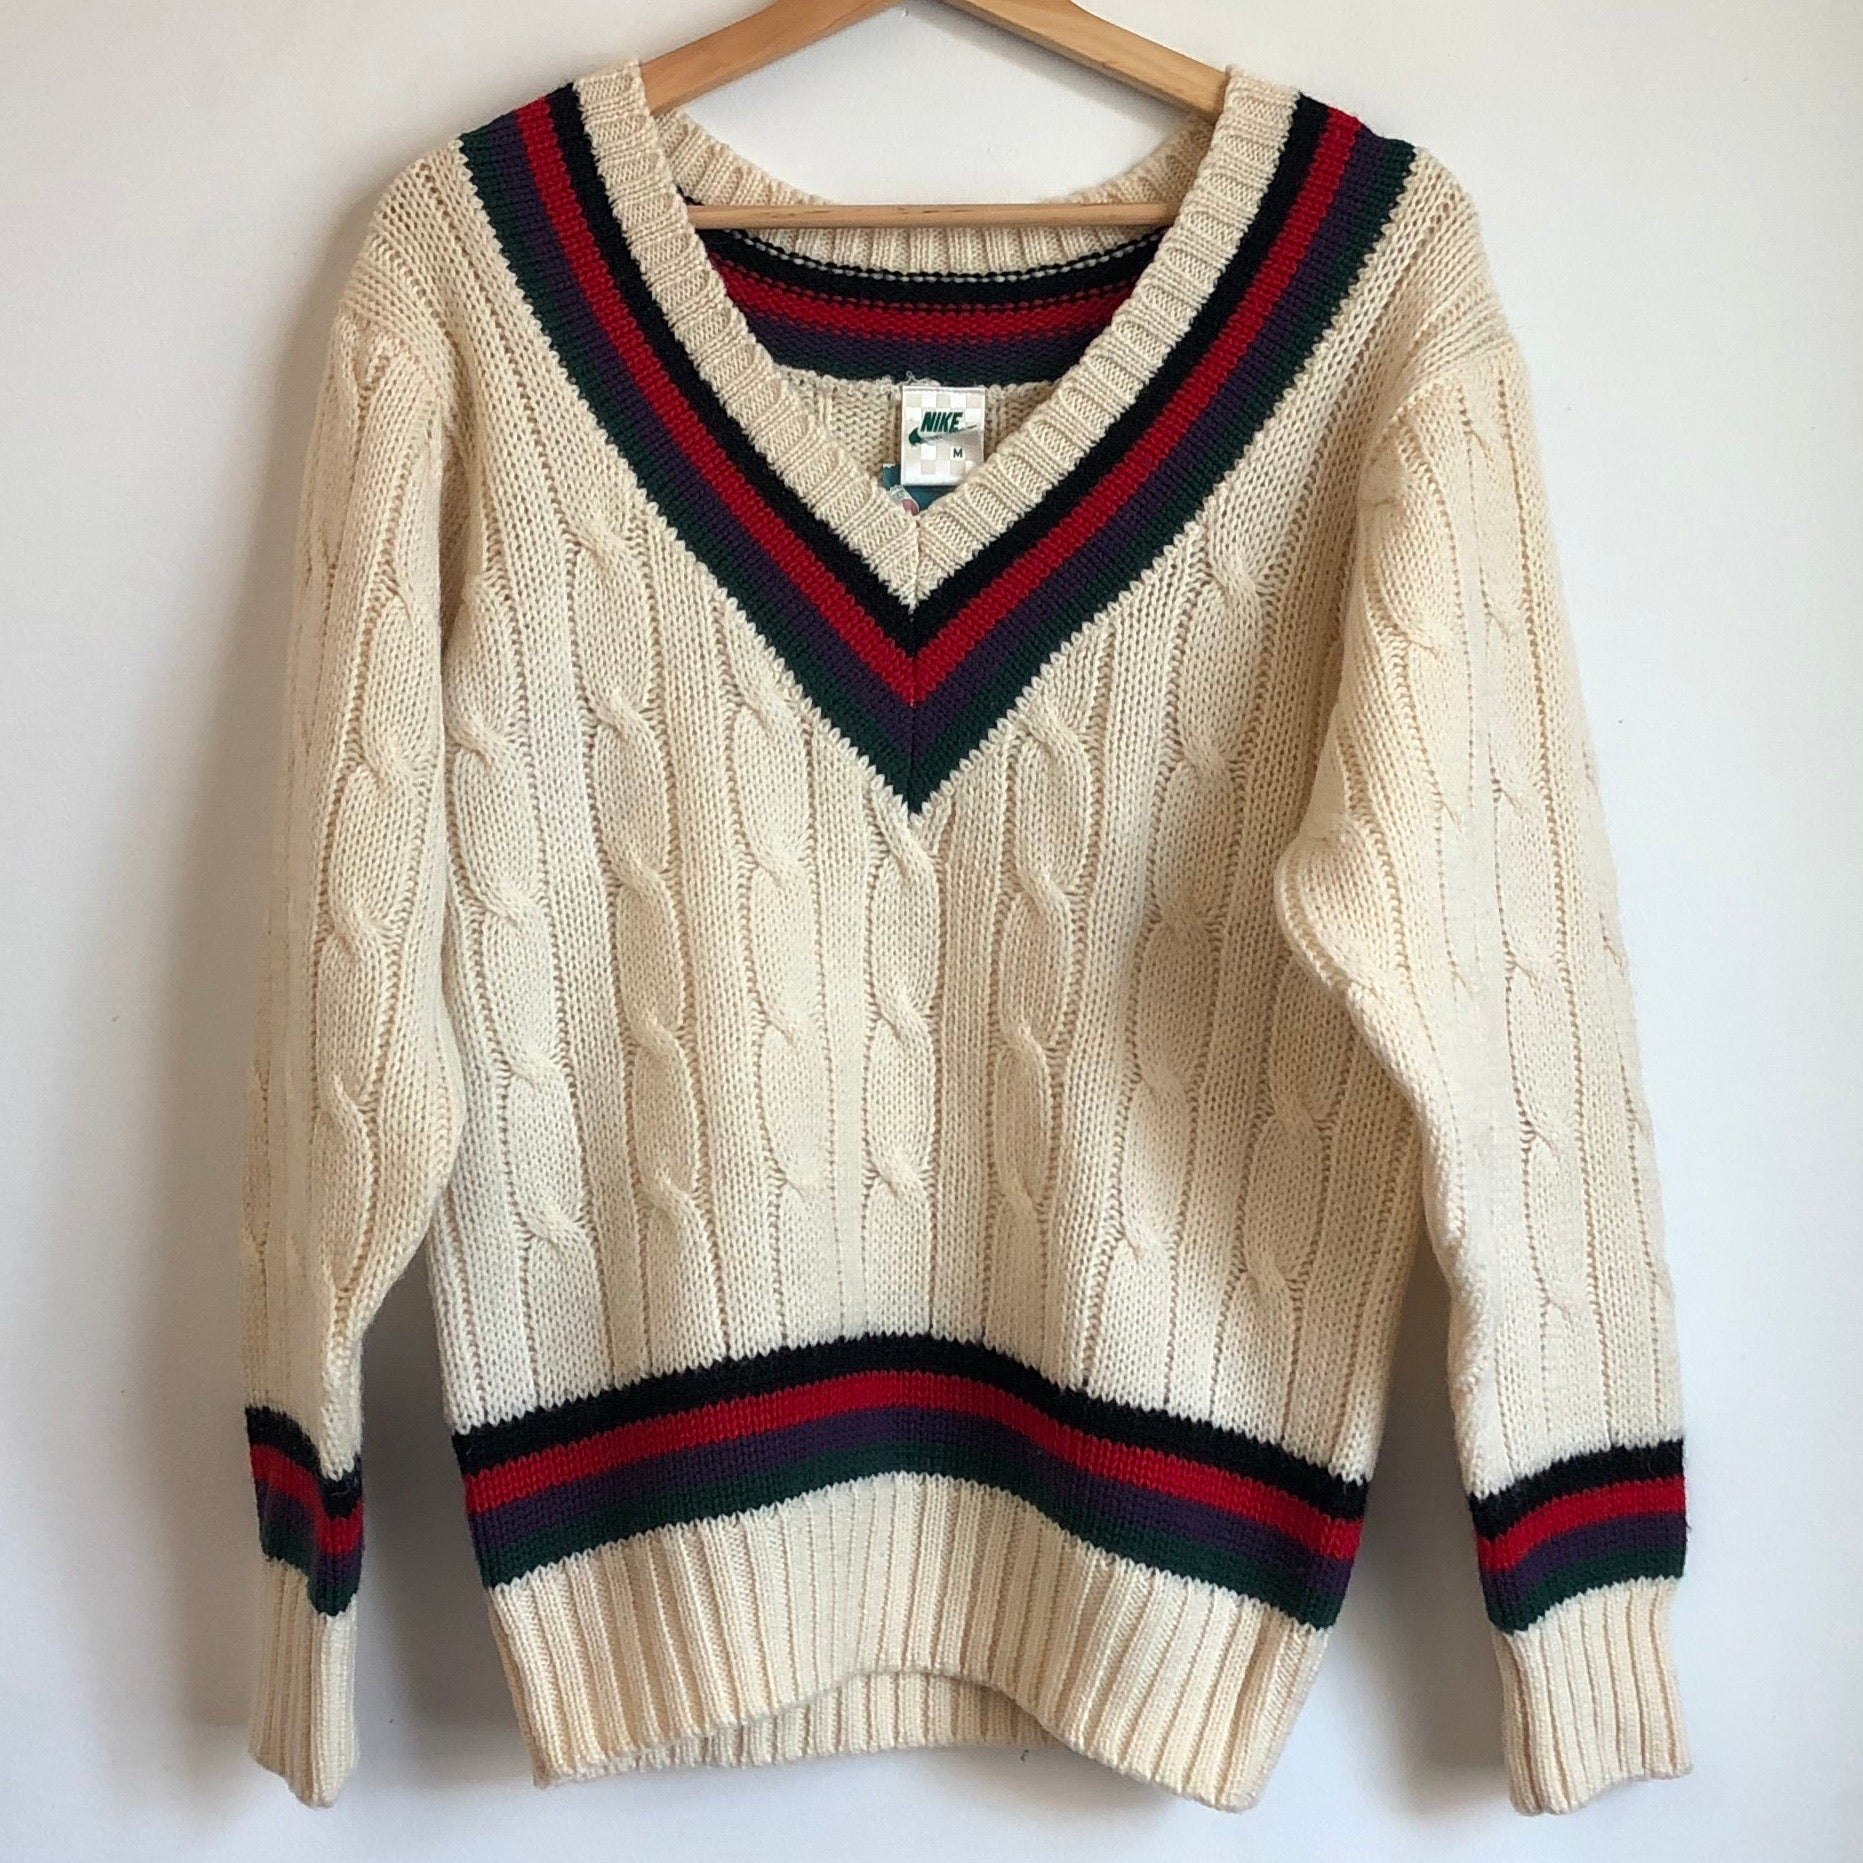 1980s Nike John McEnroe Knit V-Neck Tennis Sweater